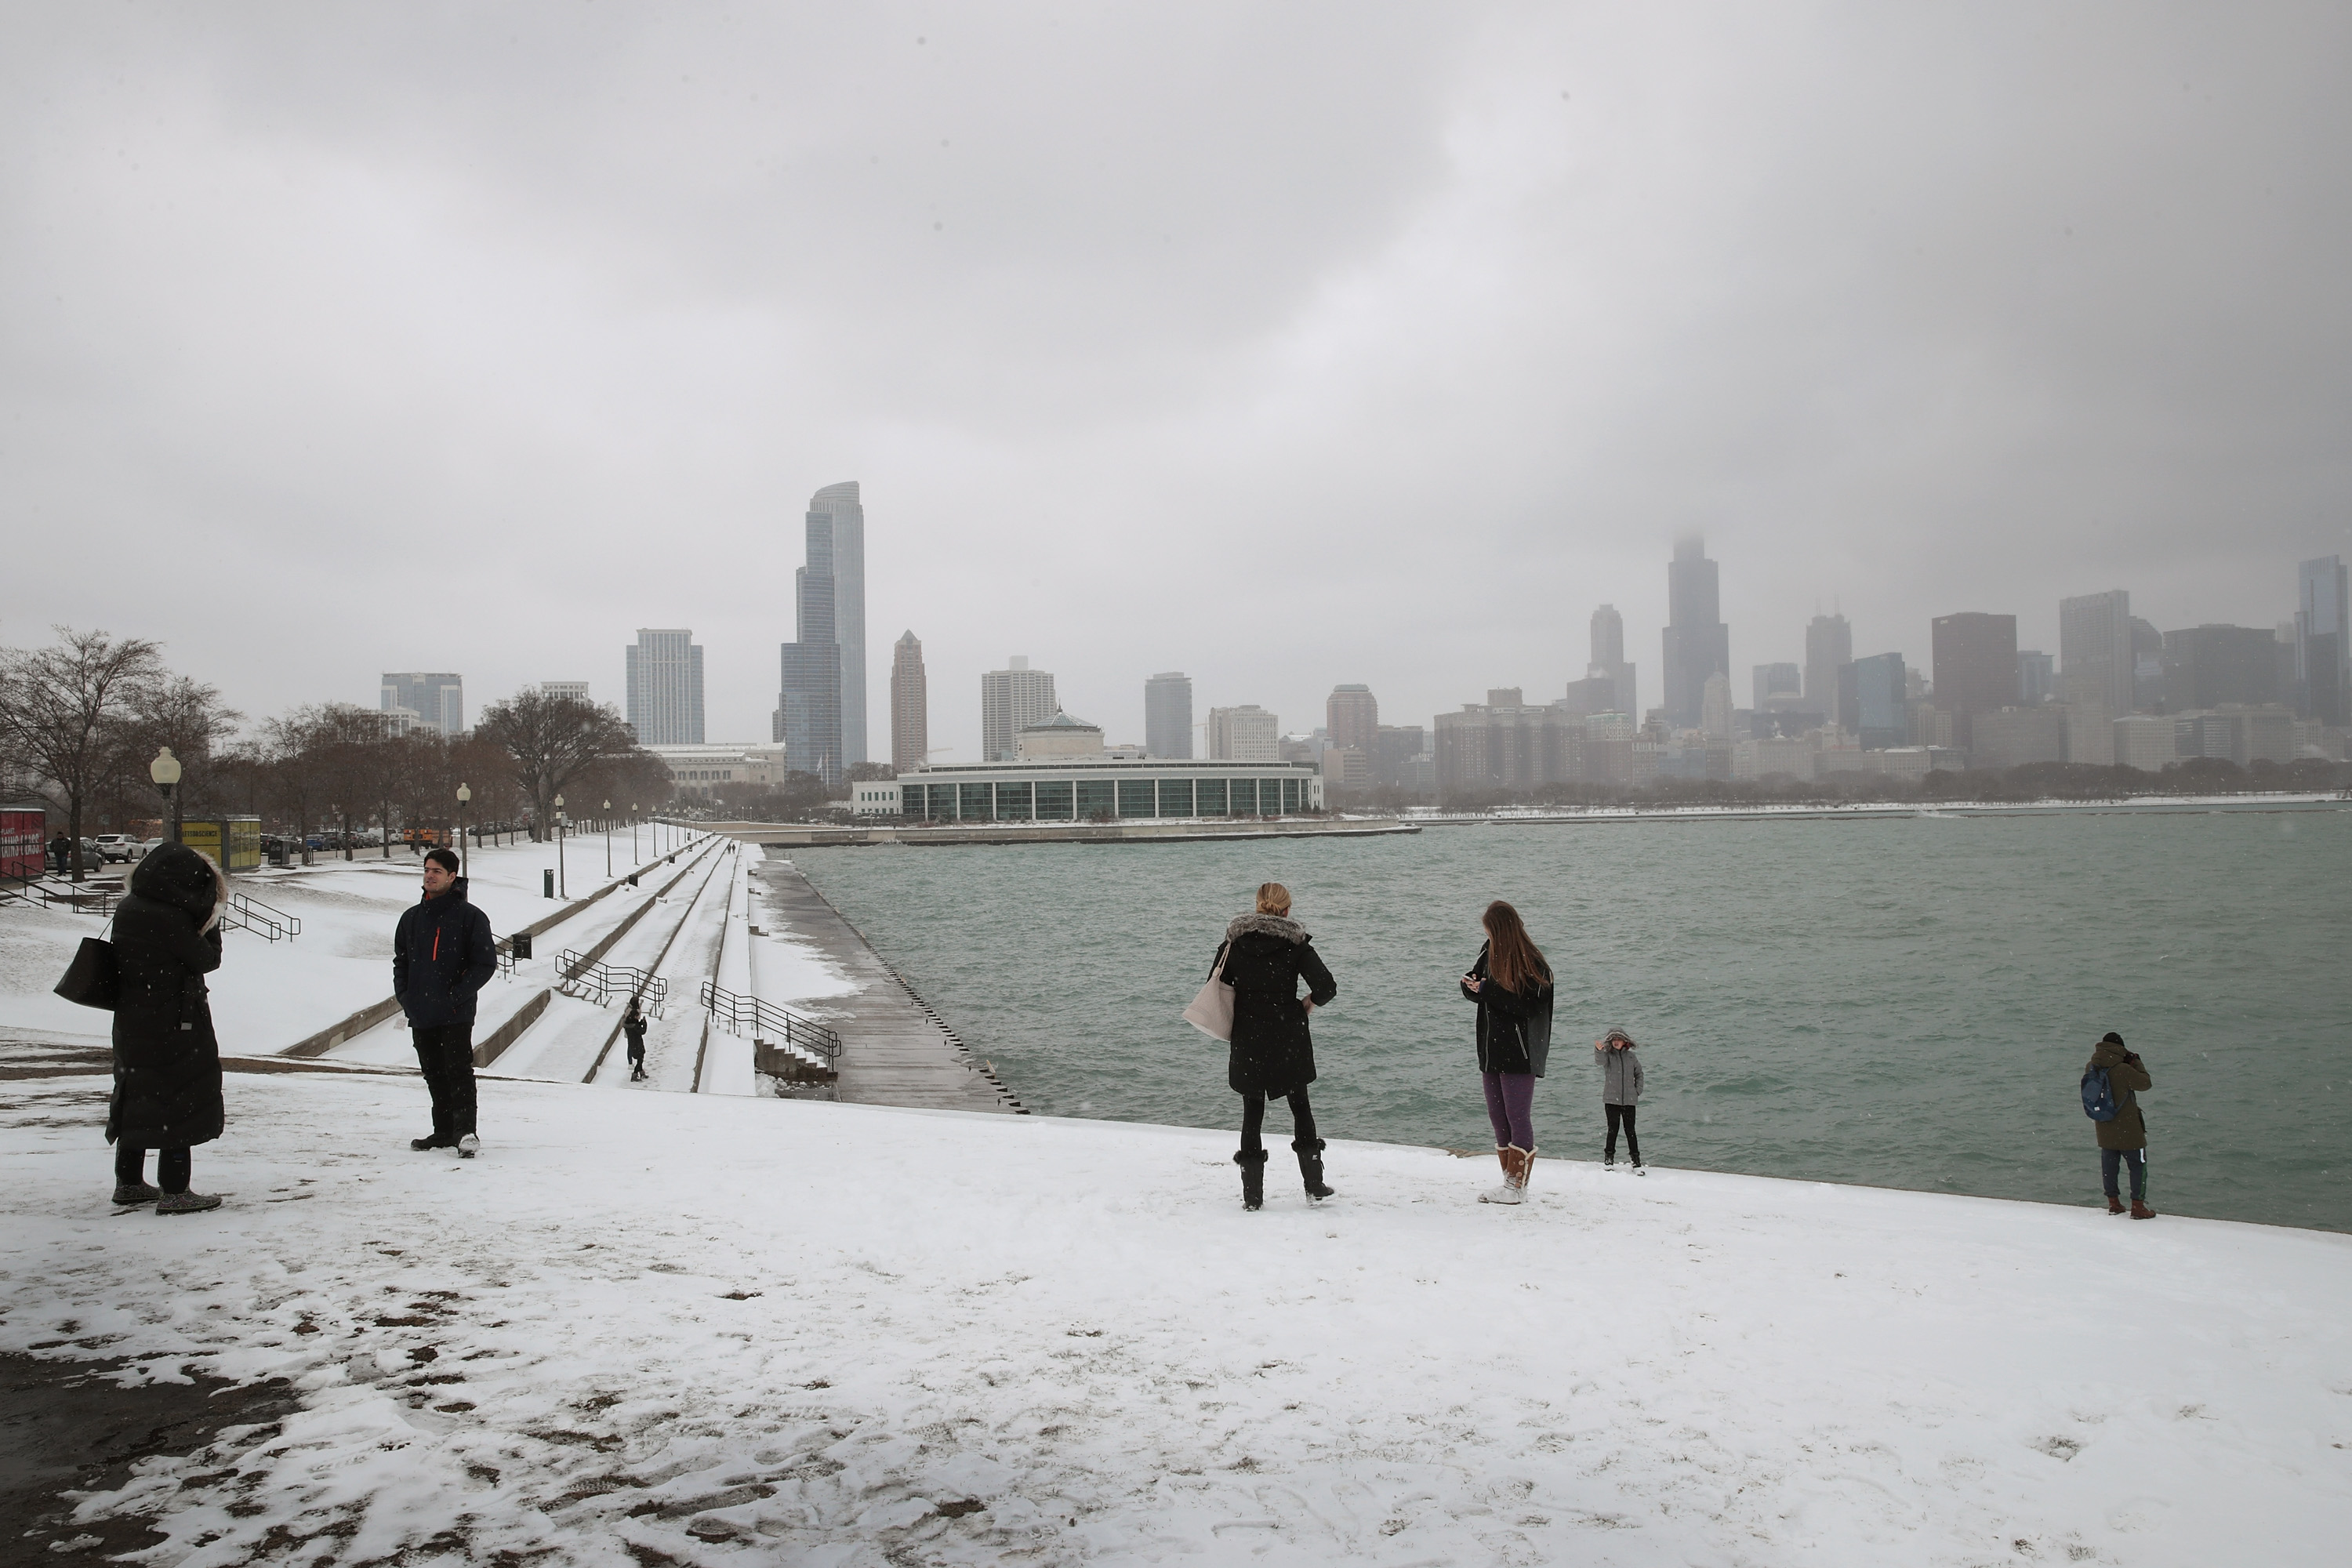 Chicago Hit With First Snow Storm Since December 2016